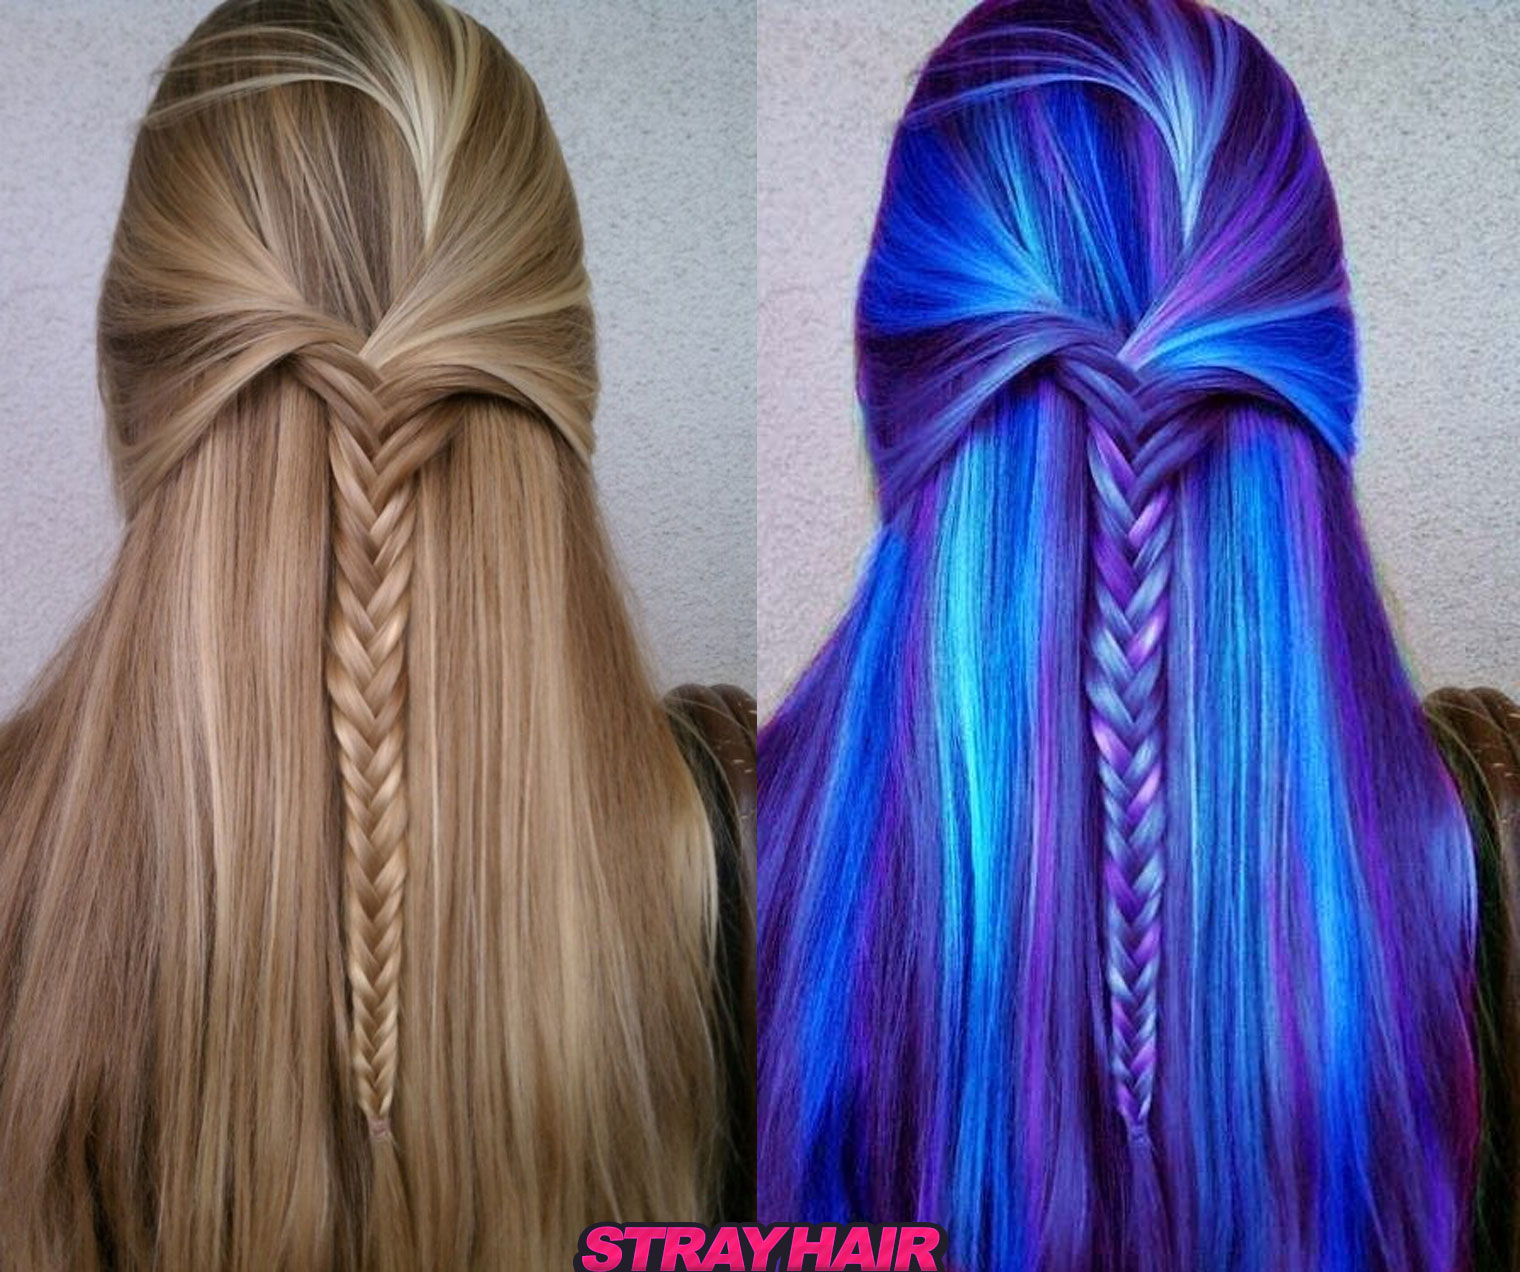 Hair Color Strayhair